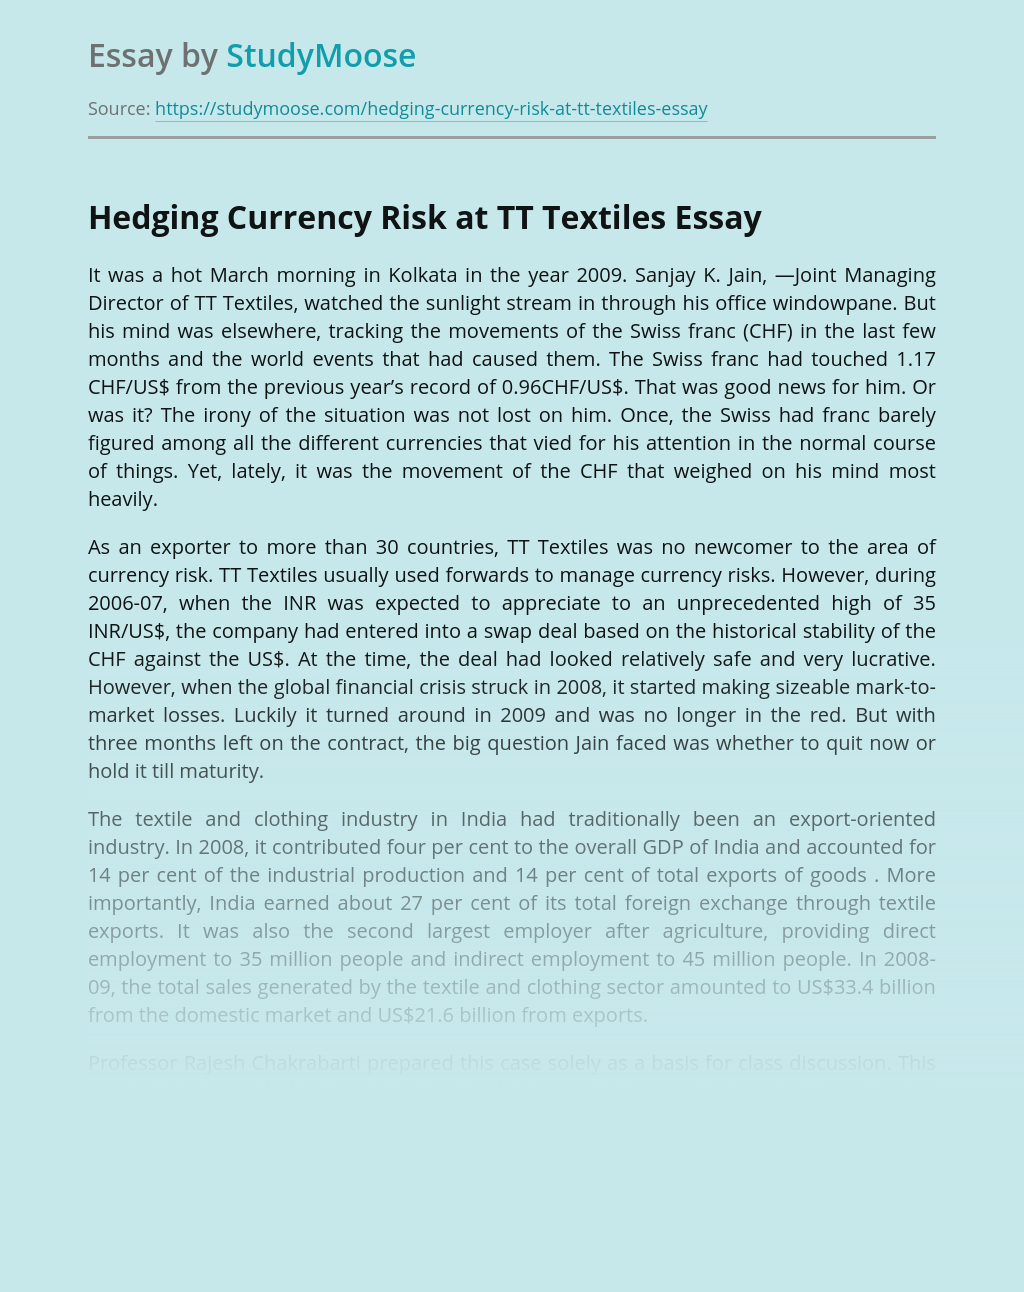 Hedging Currency Risk at TT Textiles